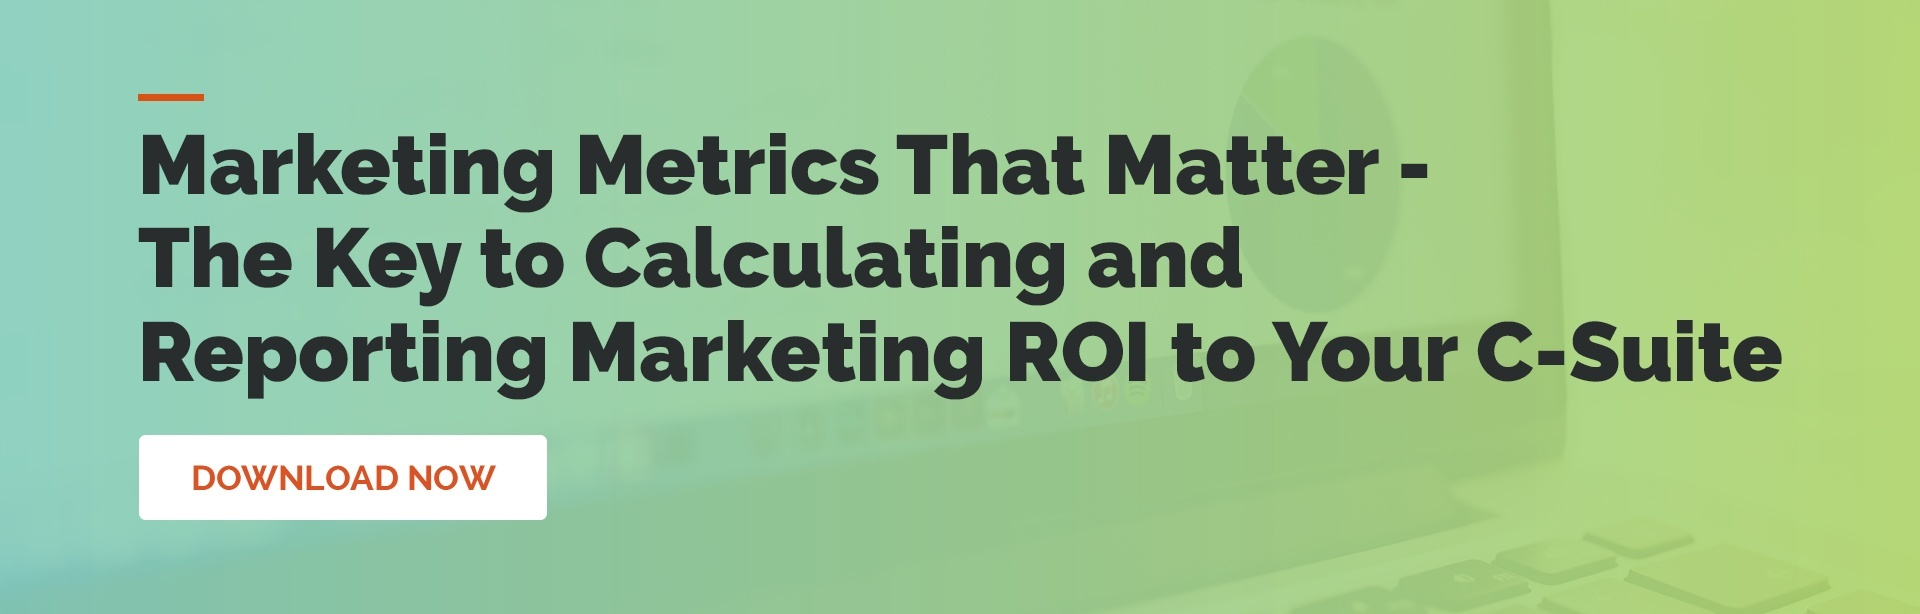 Download Marketing Metrics That Matter Guide